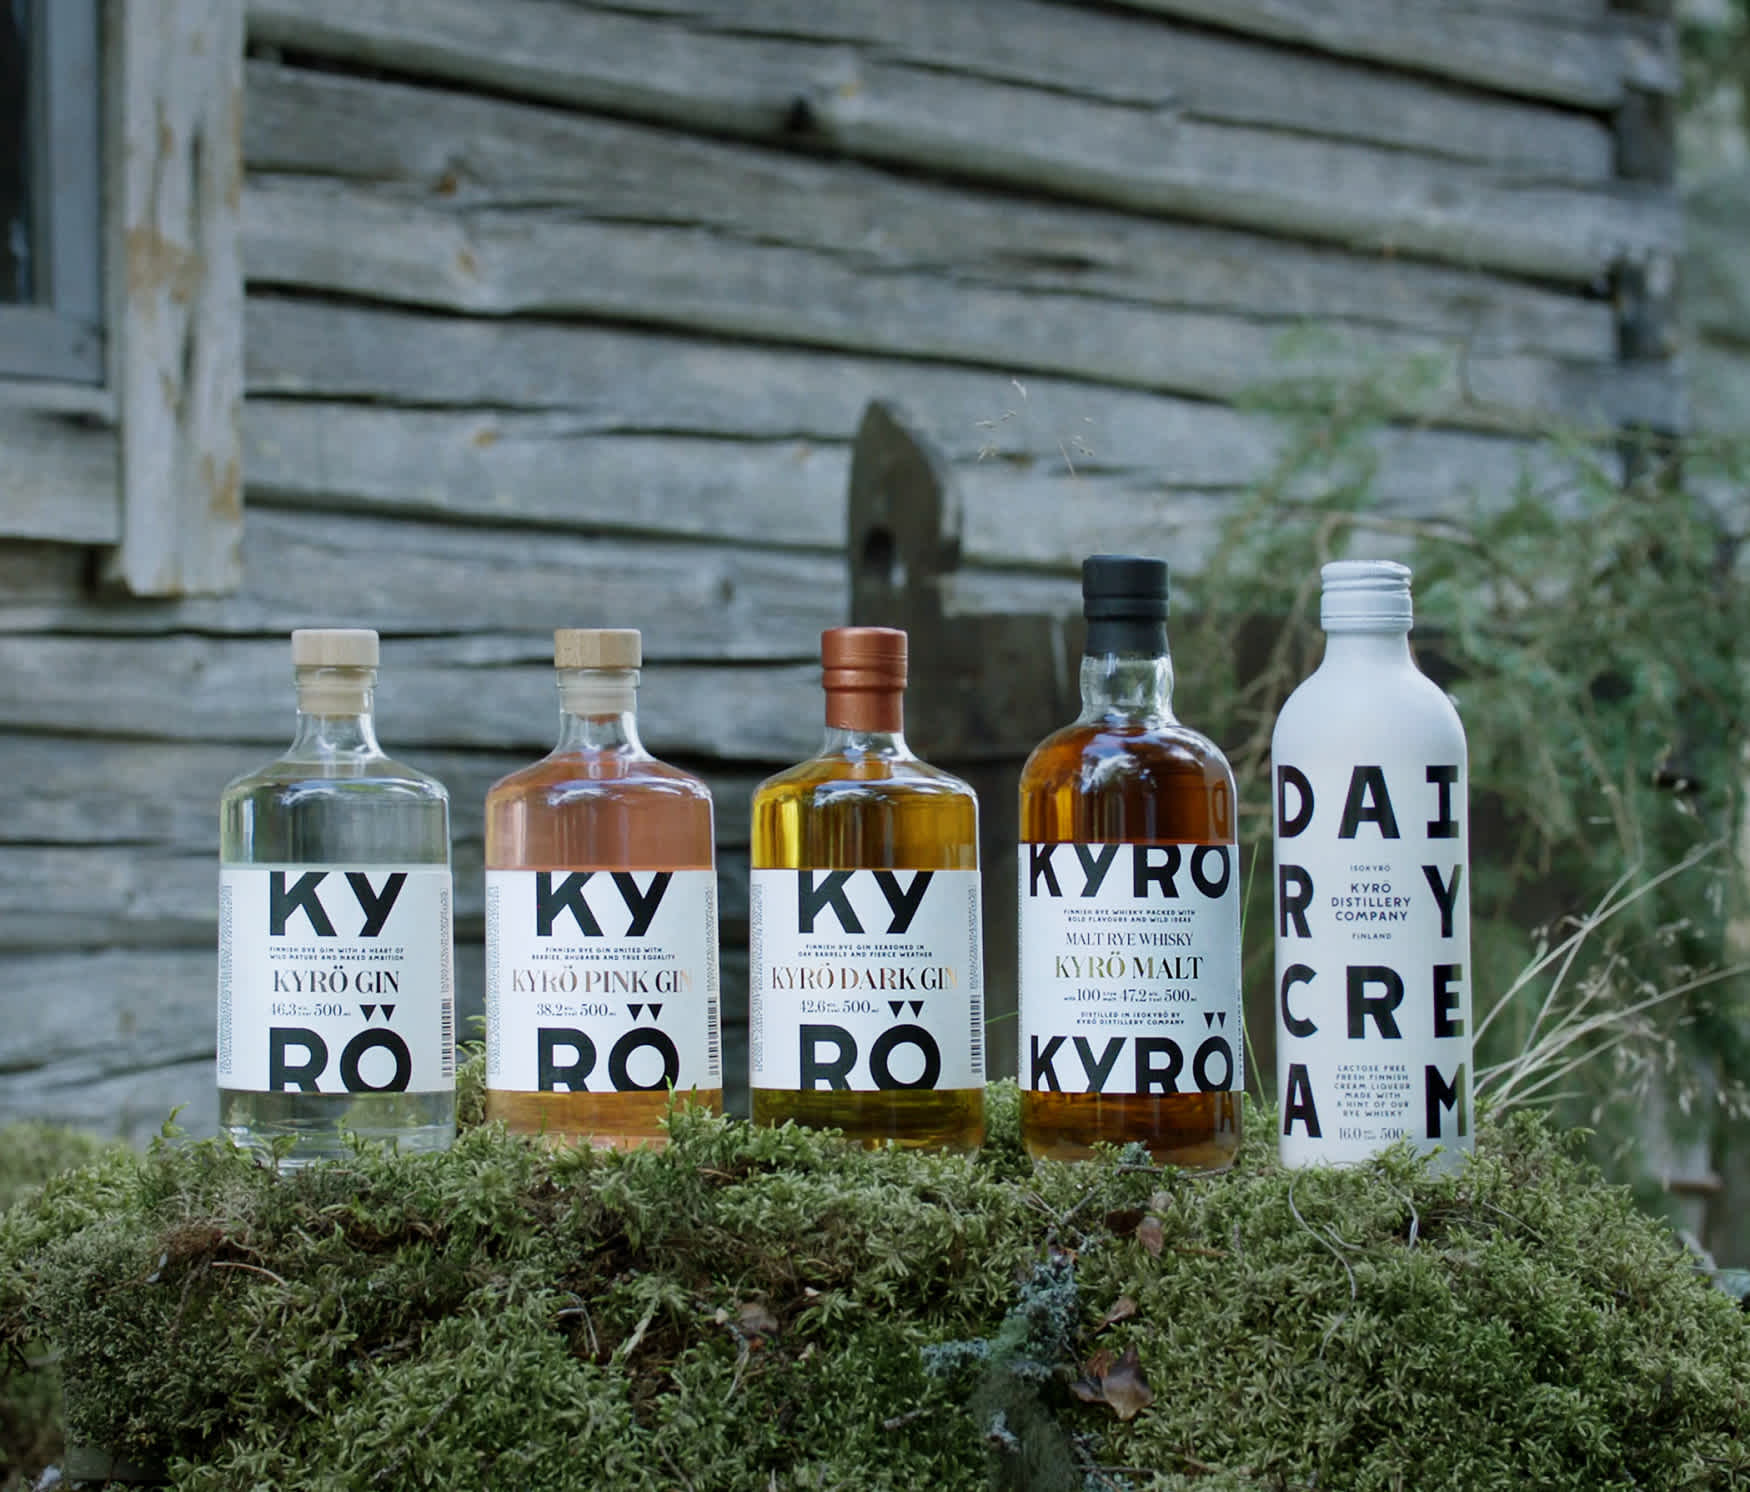 Line up of all Kyrö products including, Kyrö Gin, Kyrö Dark Gin, Kyrö Pink Gin, Kyrö Malt rye whisky and Dairy Cream cream liqueur. In the background Finnish forest.